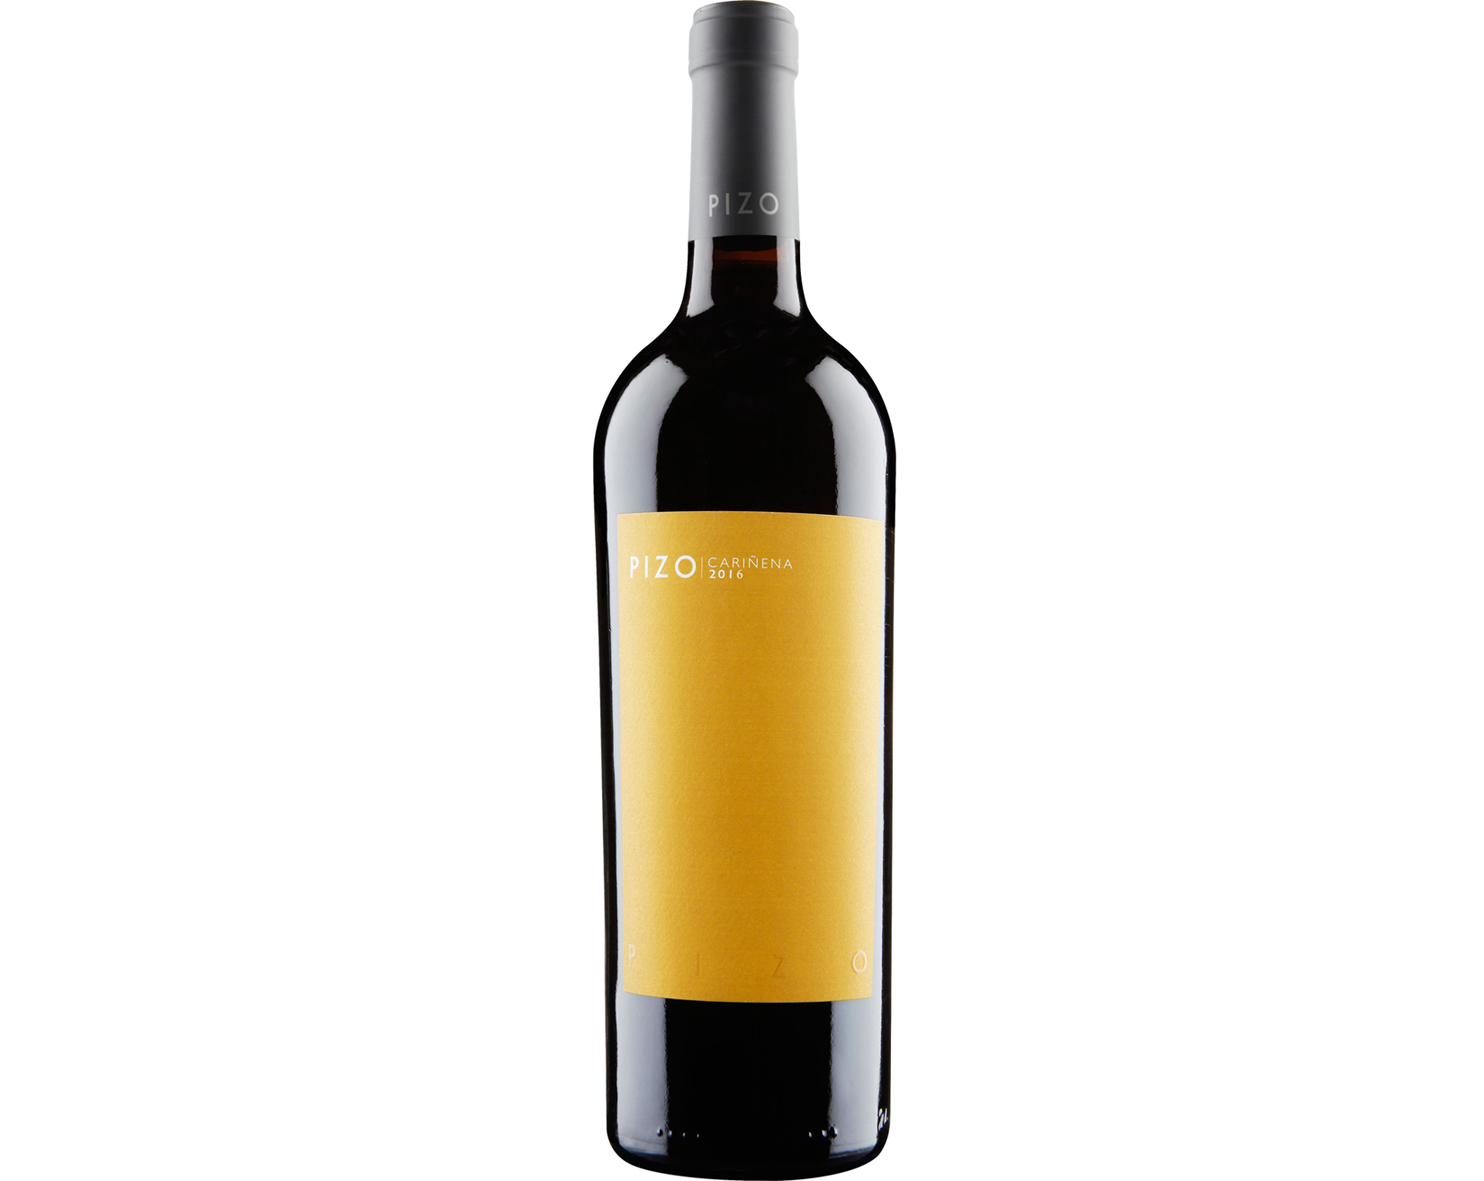 Pizo Carinena, Spain (Virgin Wines/PA)